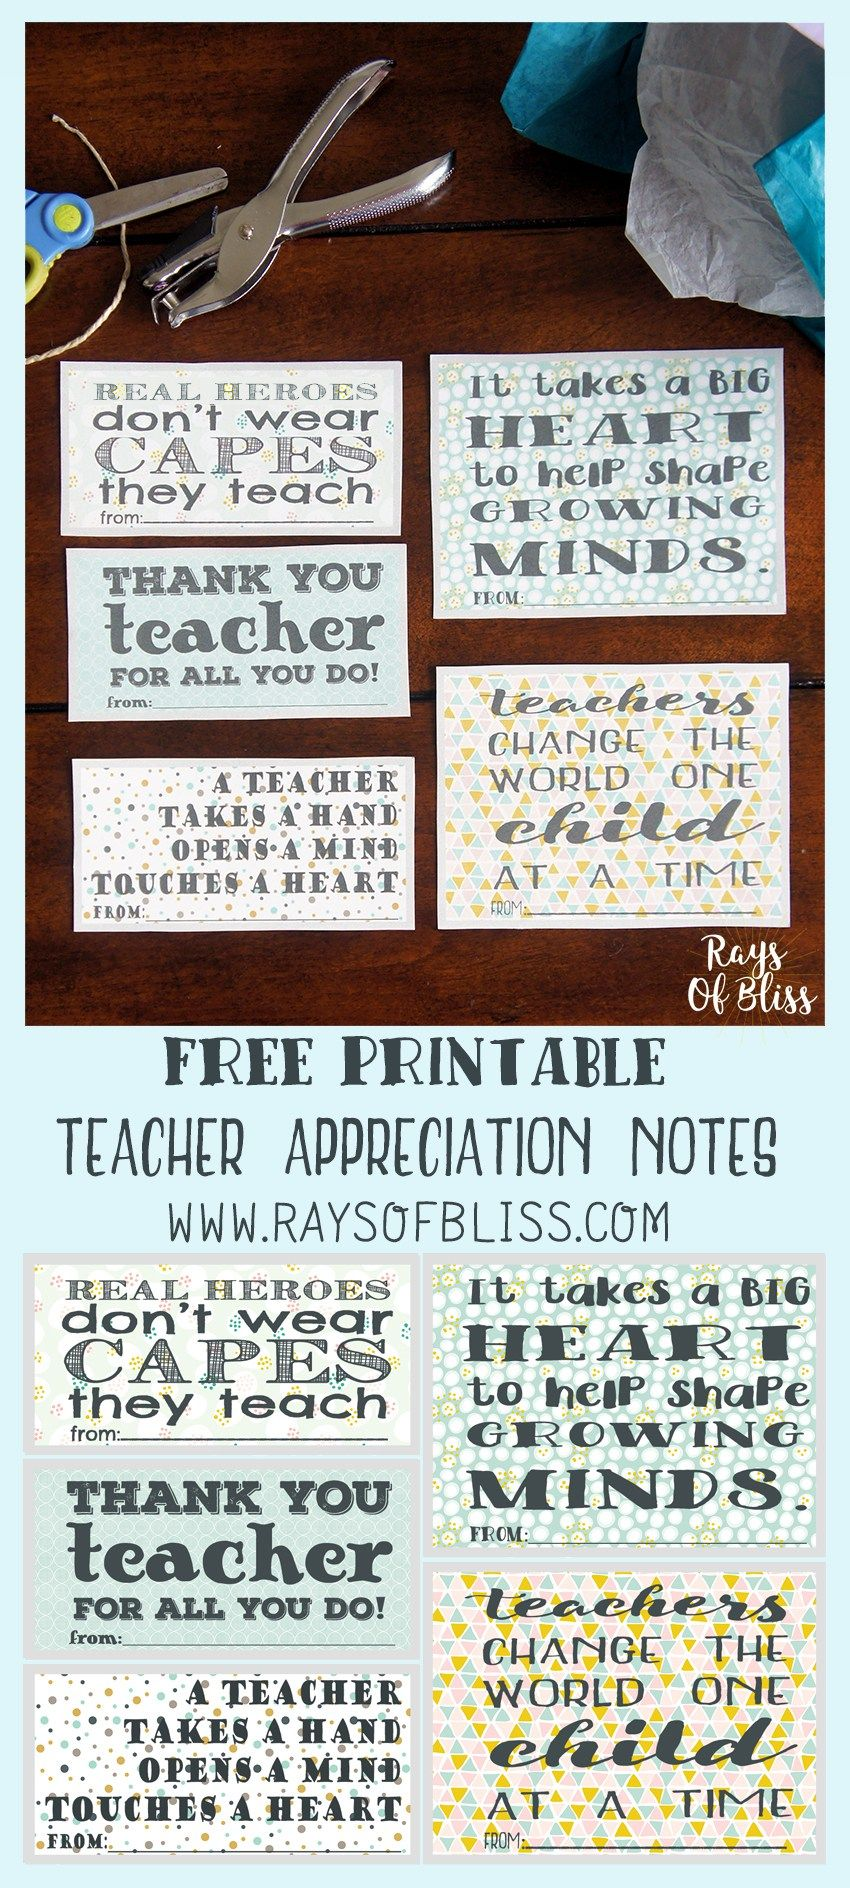 Teacher appreciation notes free printable set of 5 rays of bliss free printable set of 5 teacher appreciation notes perfect to give a little note or use as a gift tag for teacher appreciation week solutioingenieria Images